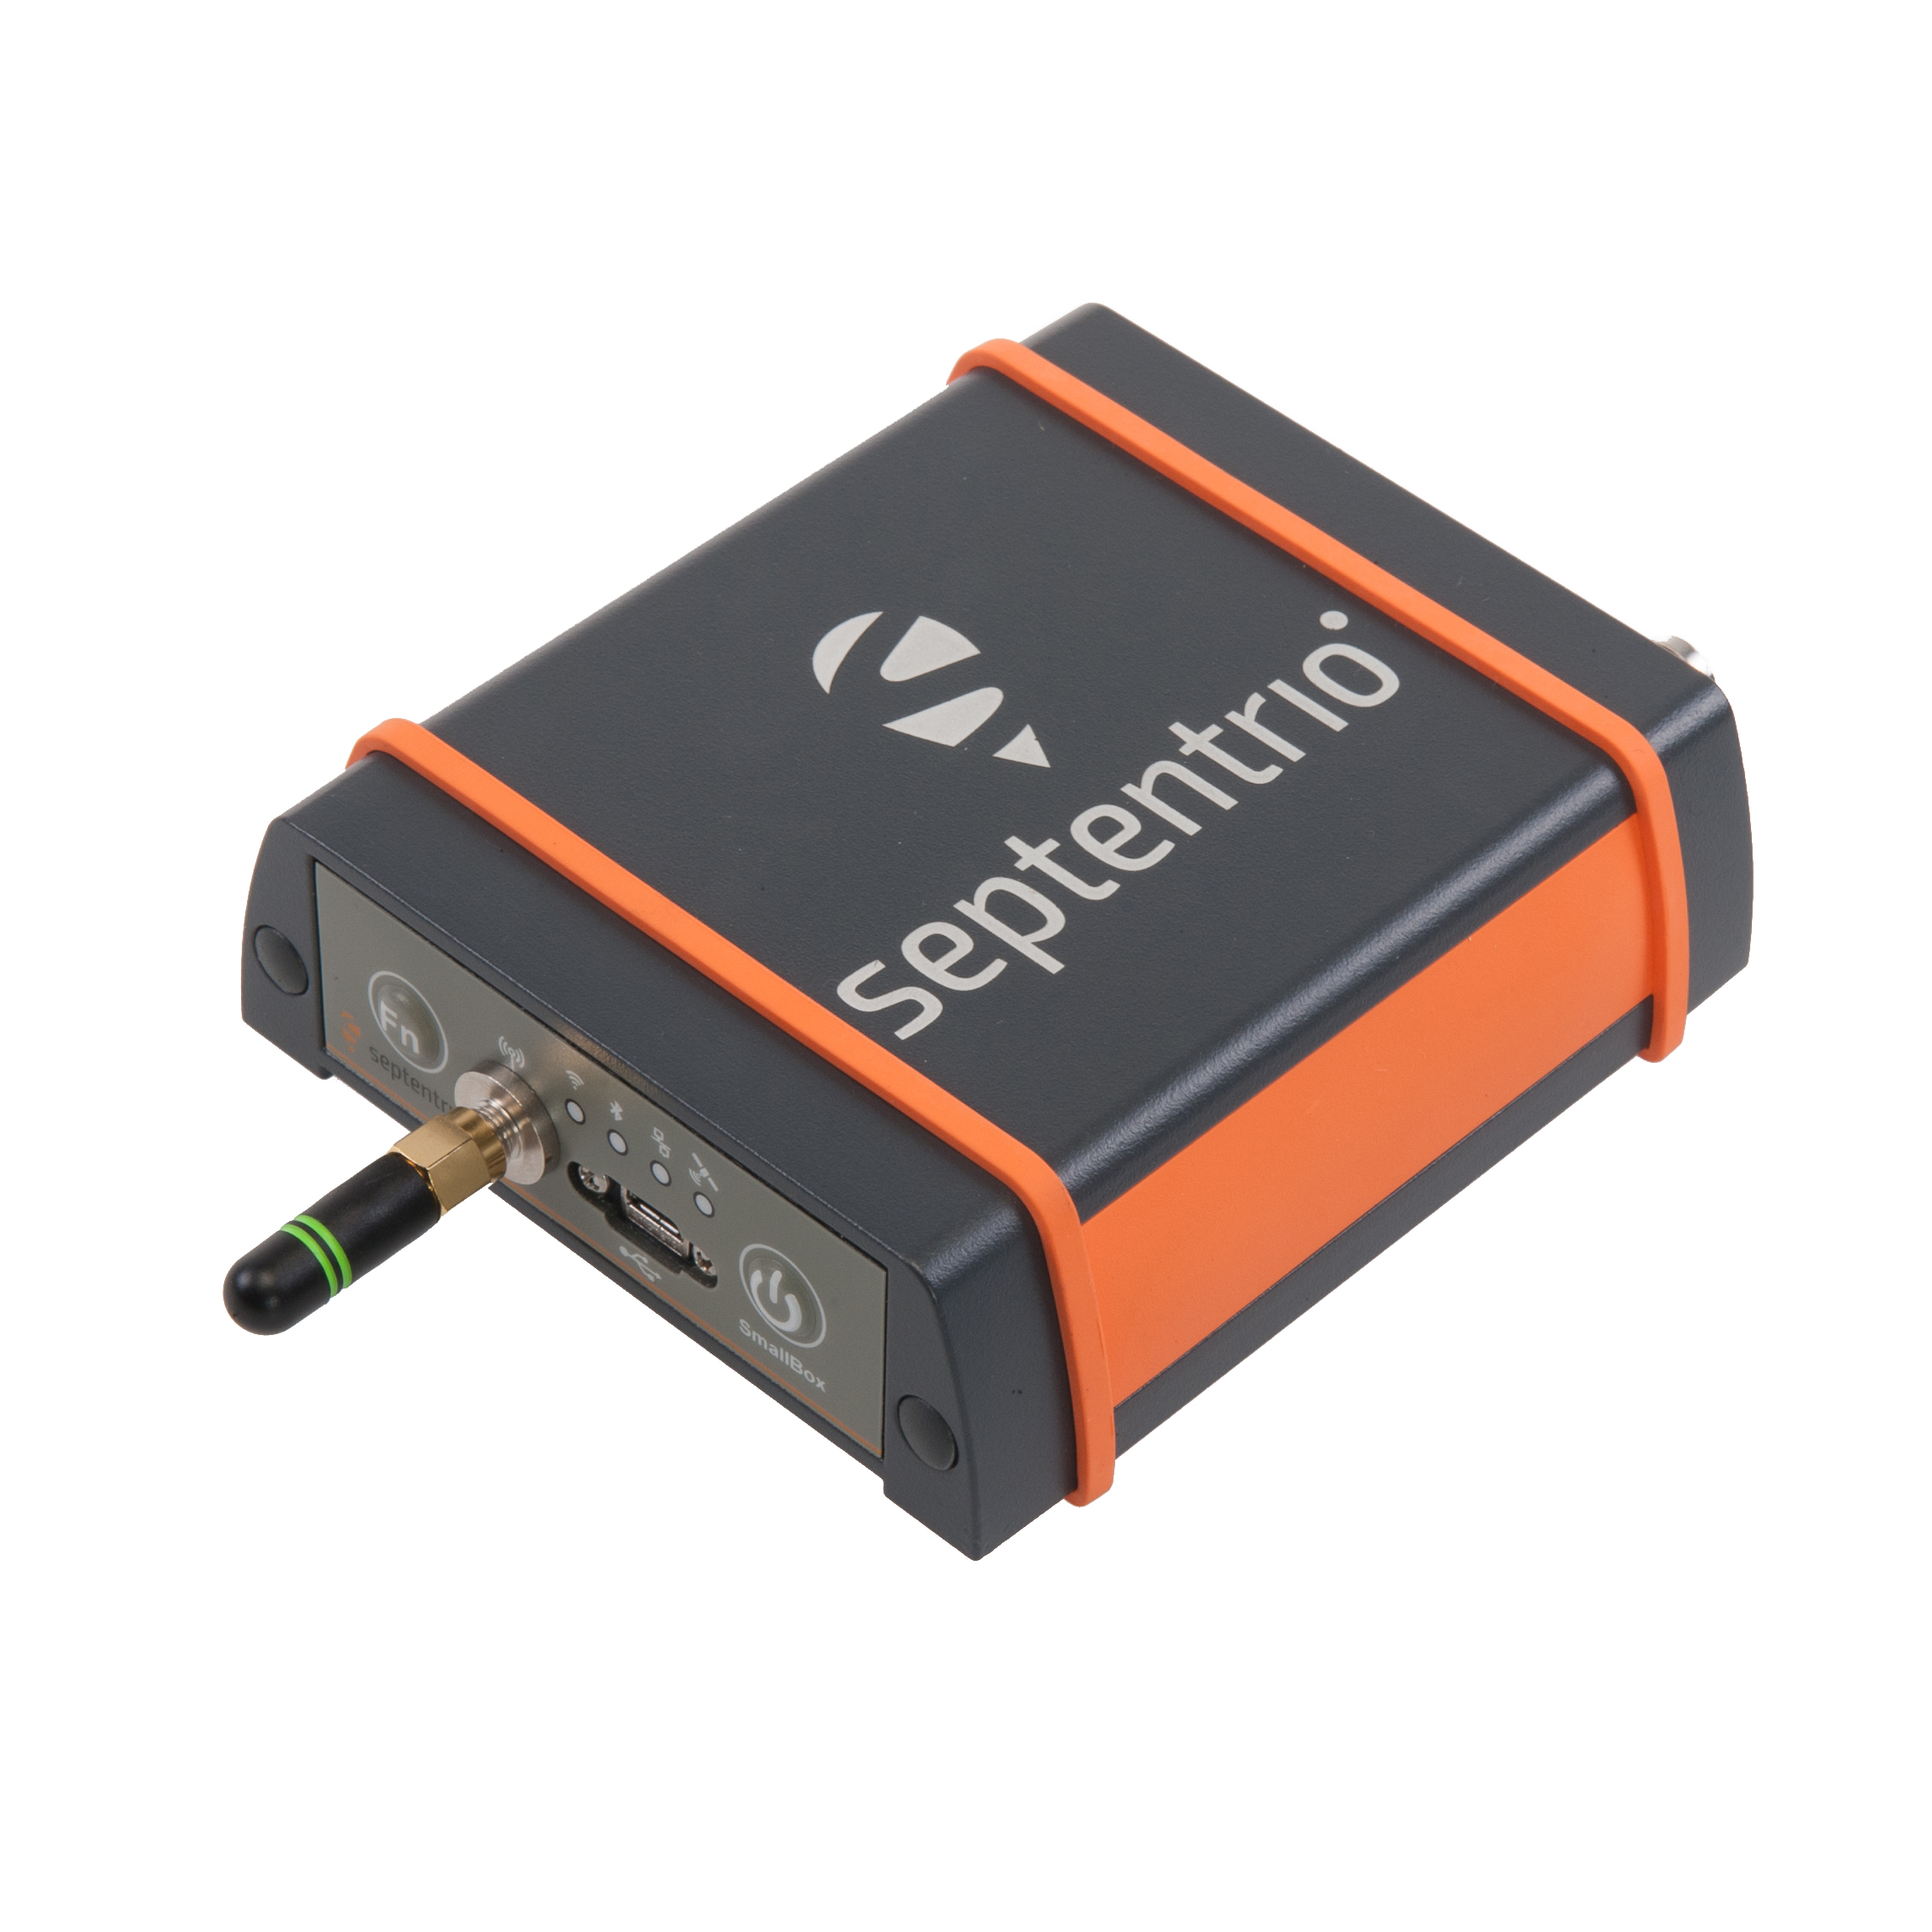 Septentrio Releases AsteRx SB, a Compact and Ruggedized GNSS Receiver